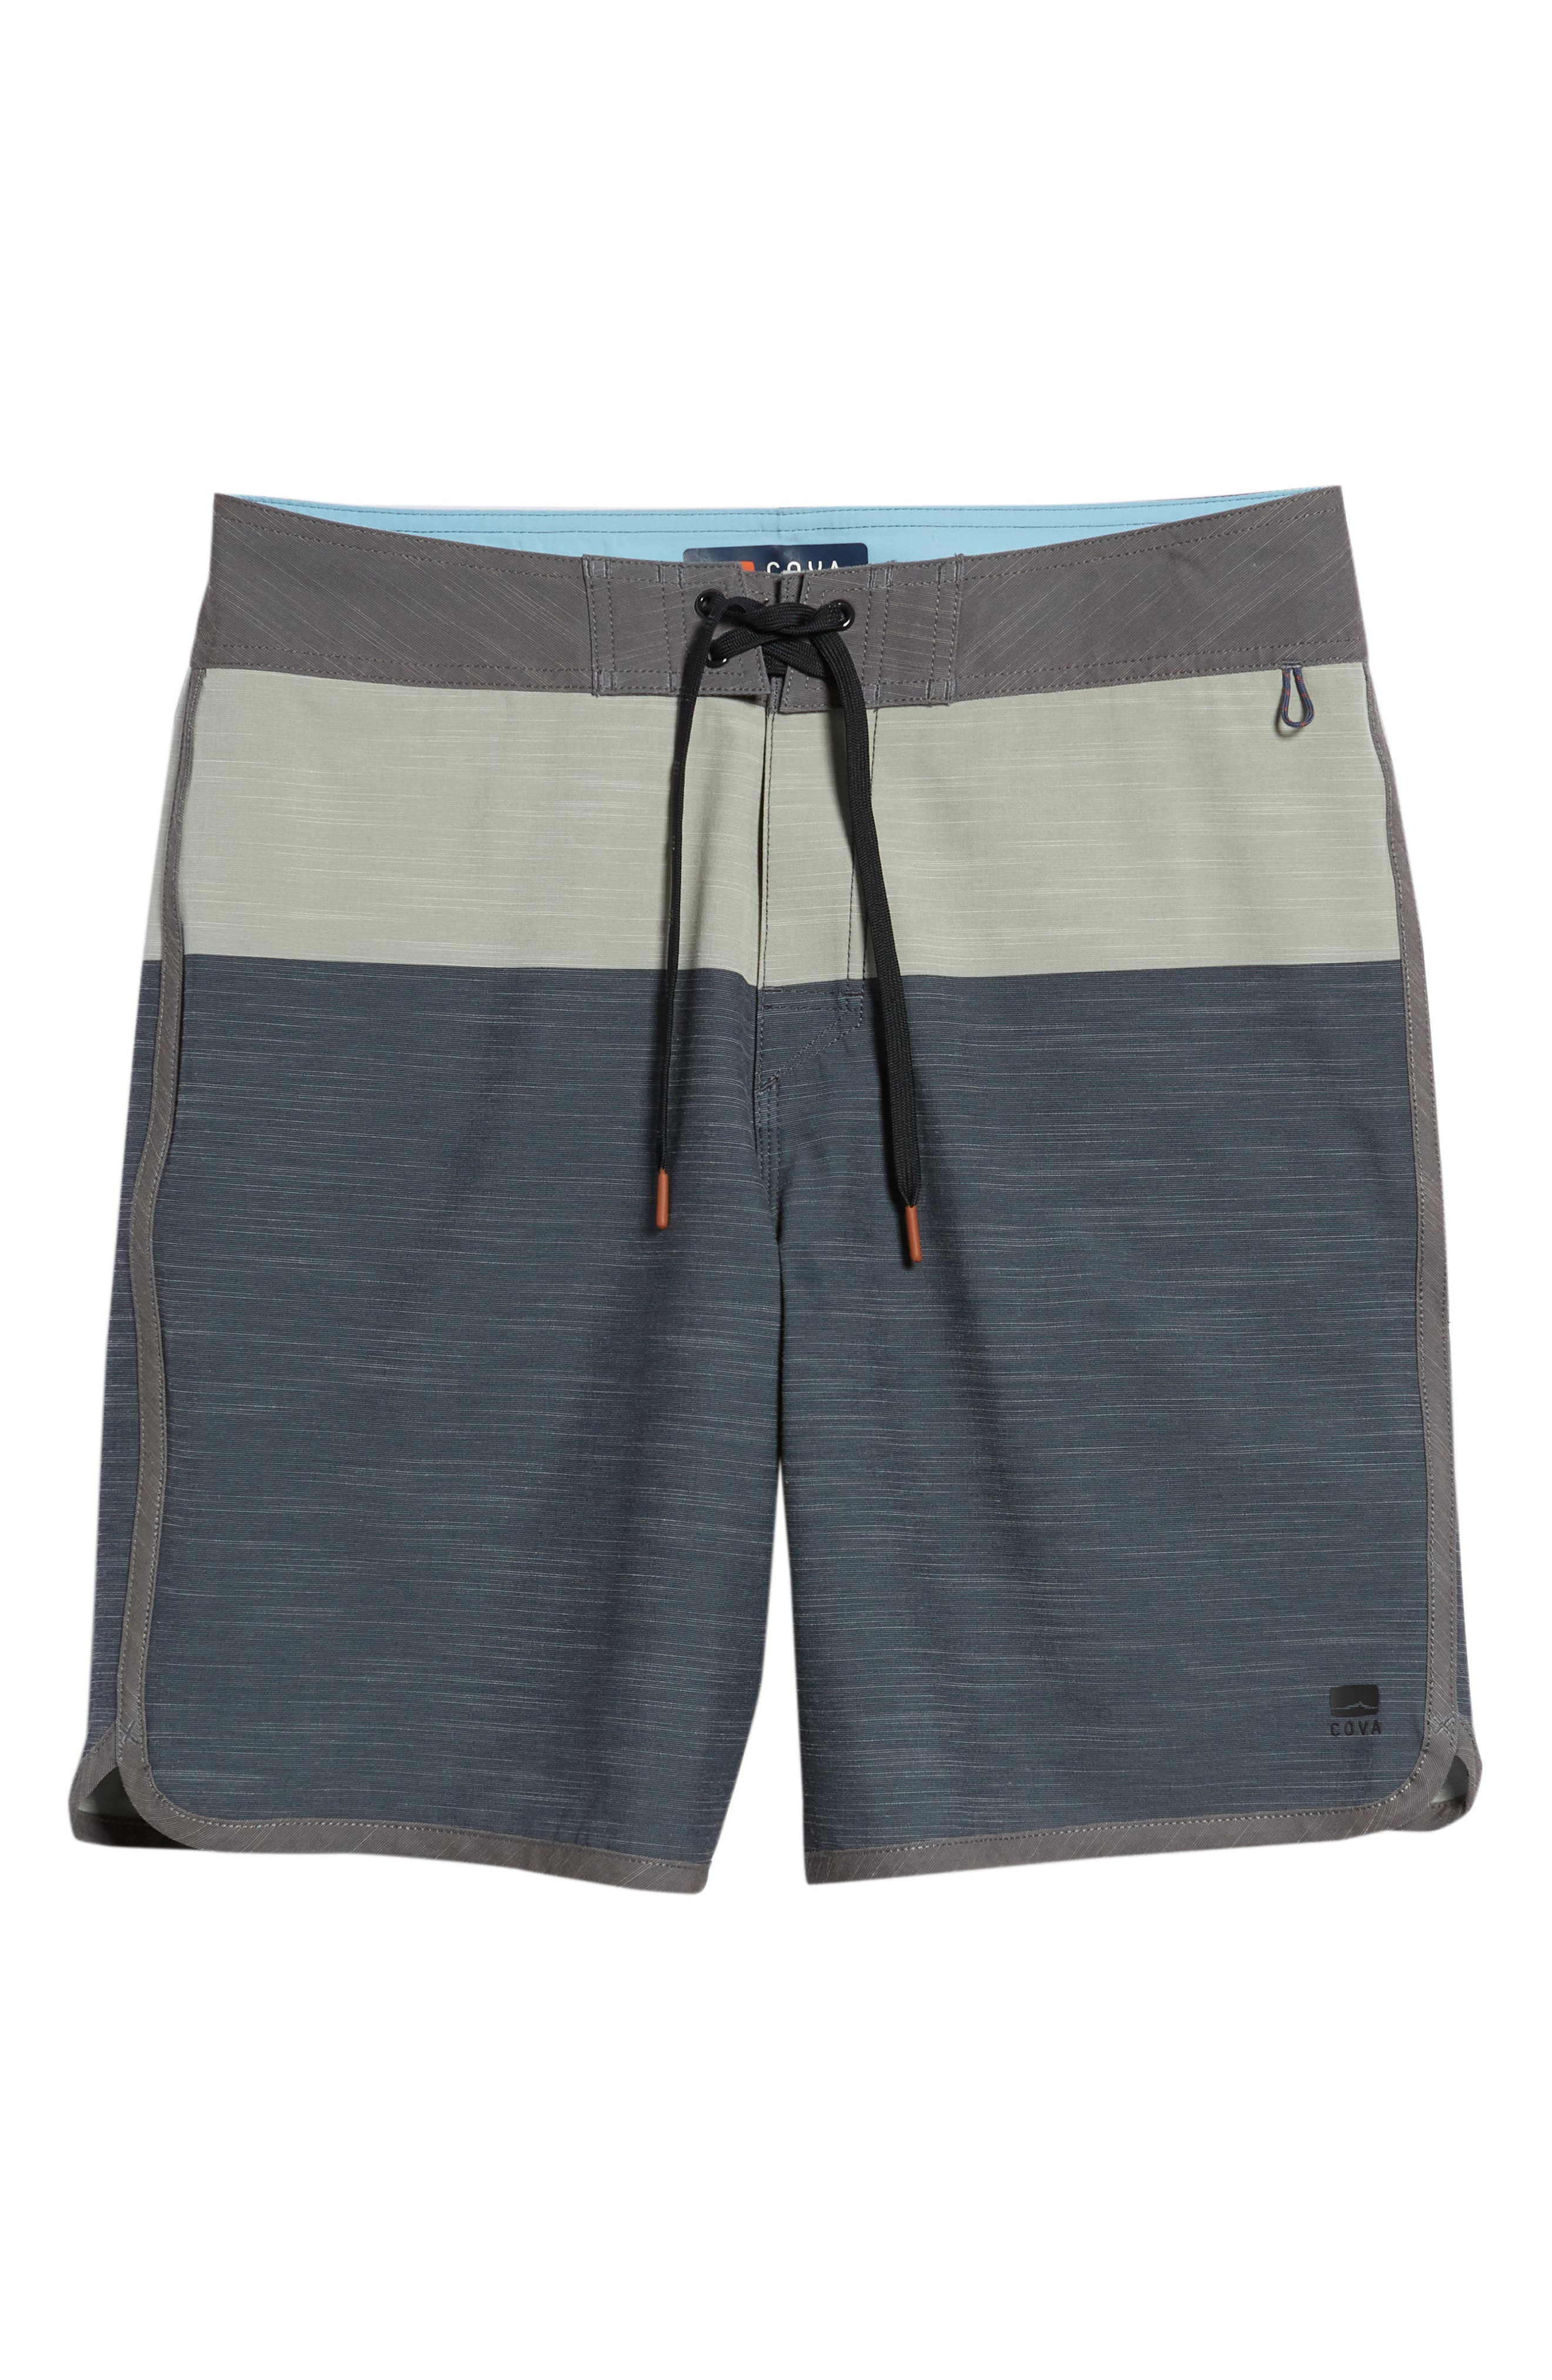 Water Level Board Shorts,                             Alternate thumbnail 6, color,                             Harbour Blue